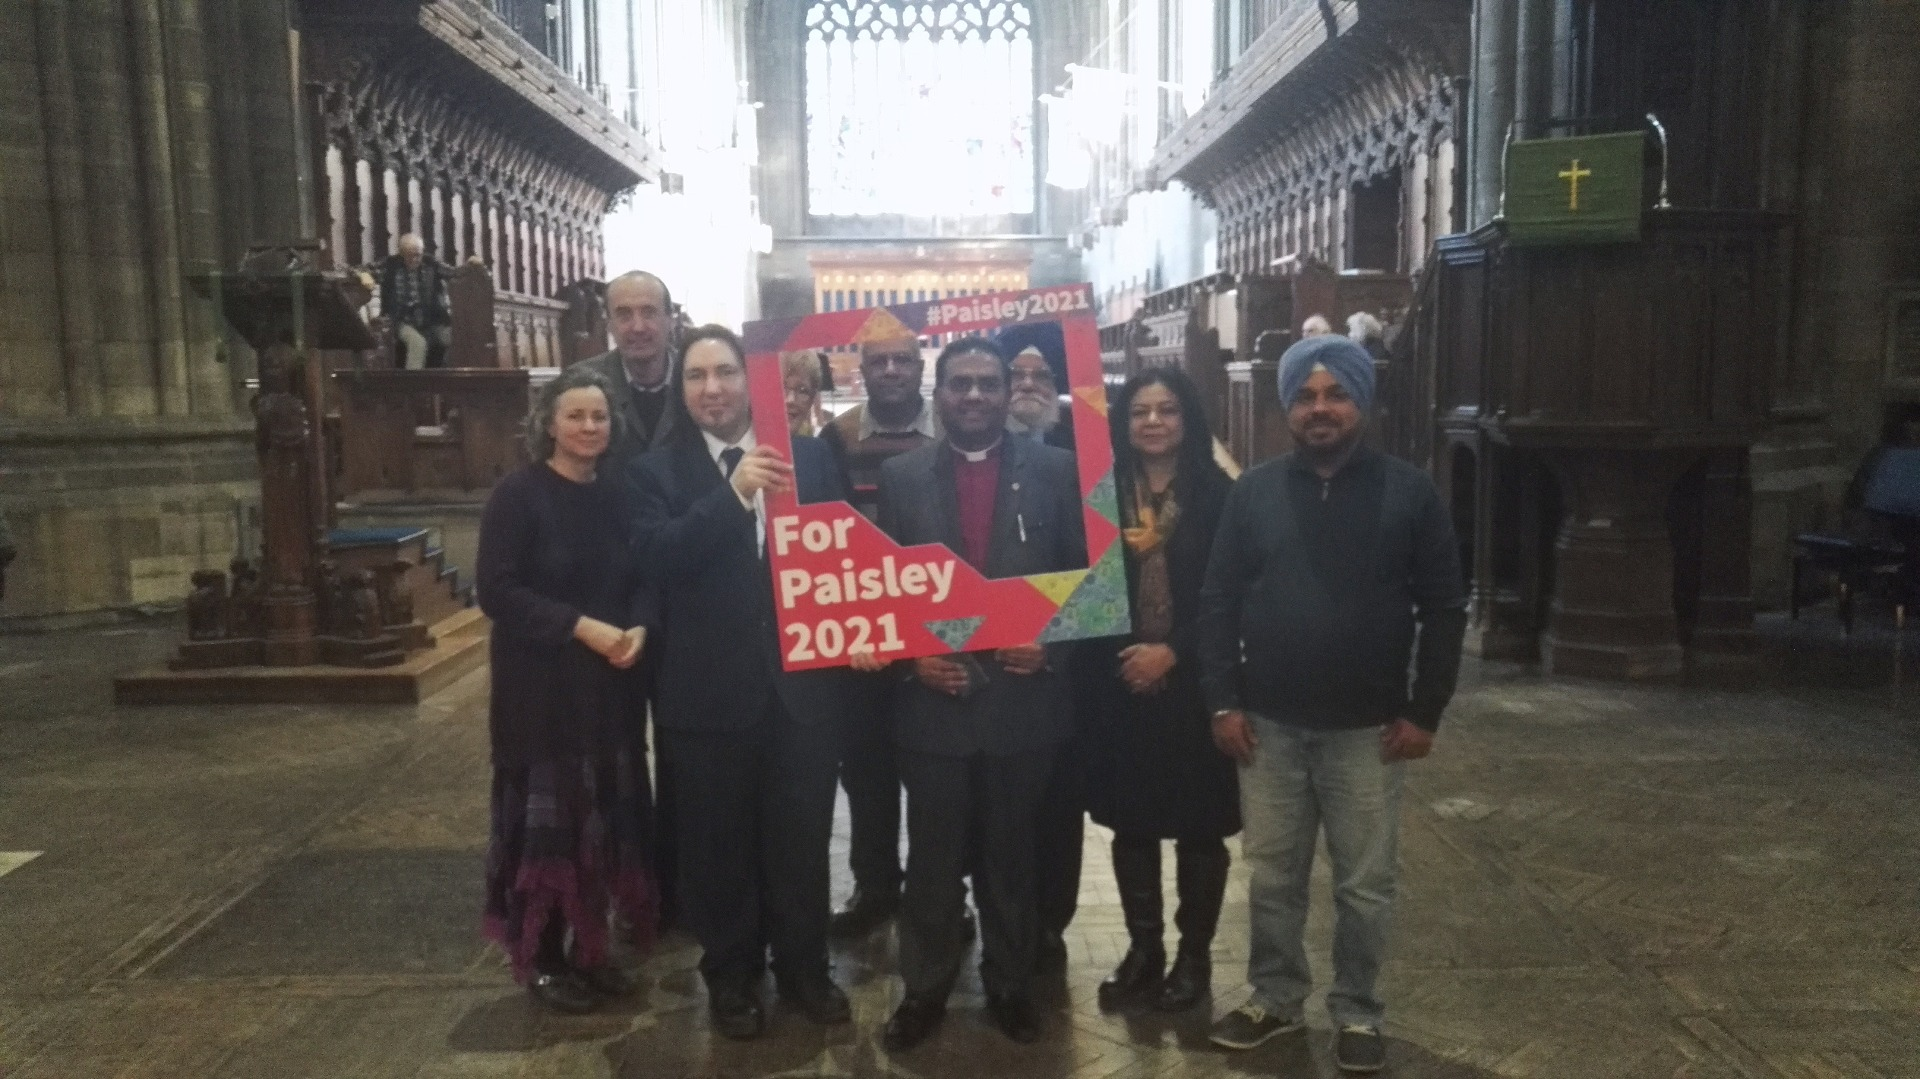 Renfrewshire Interfaith group backs the bid